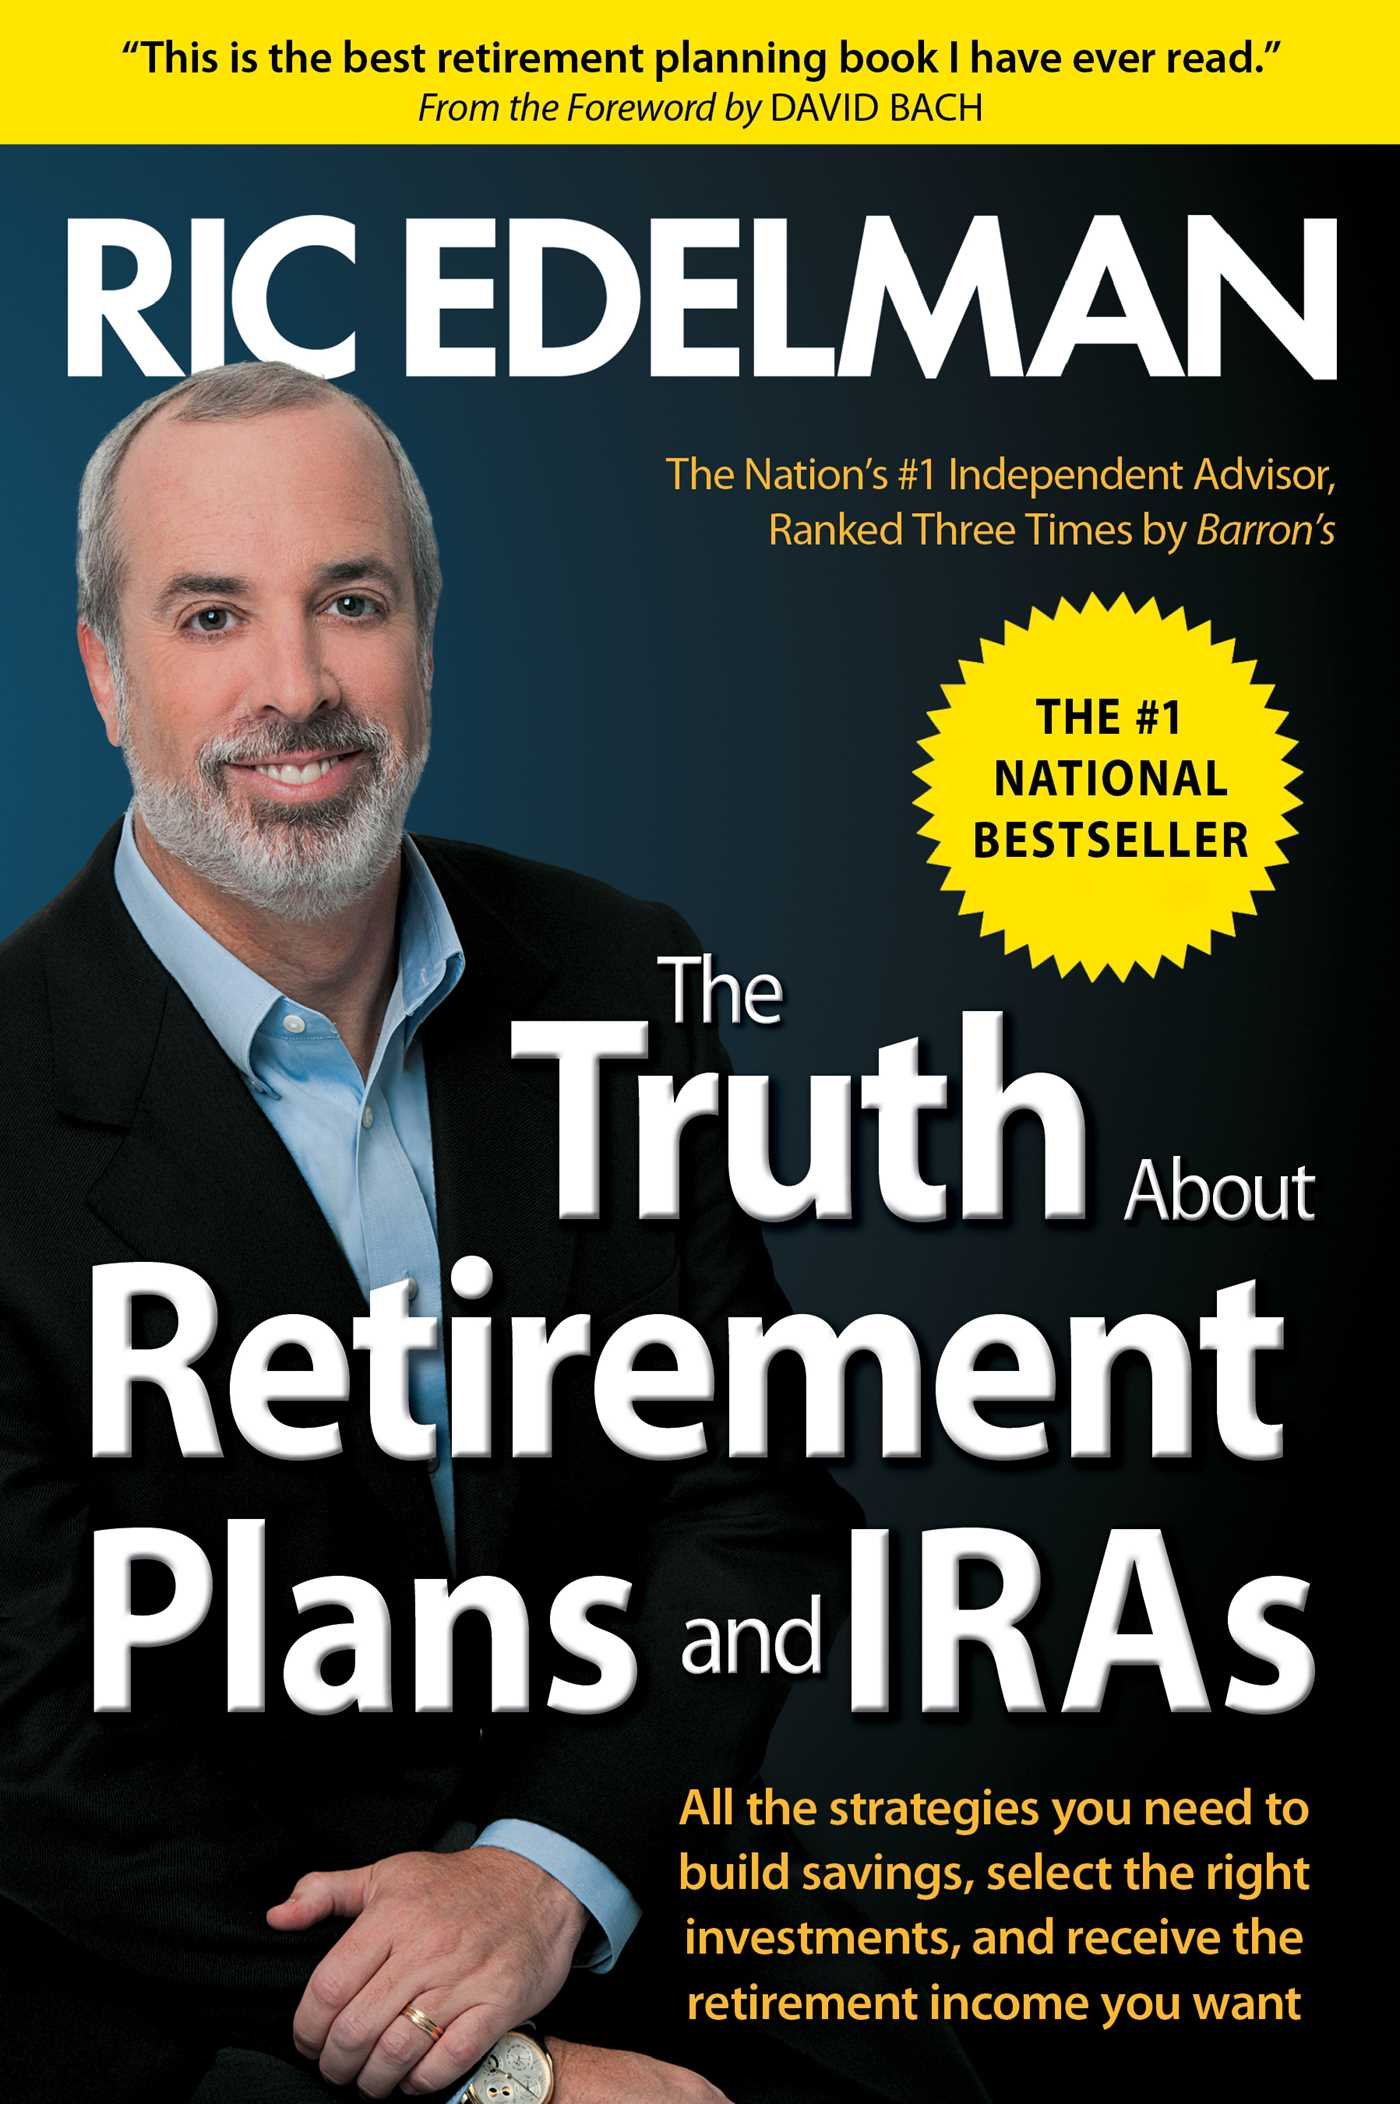 The truth about retirement plans and iras 9781476739861 hr